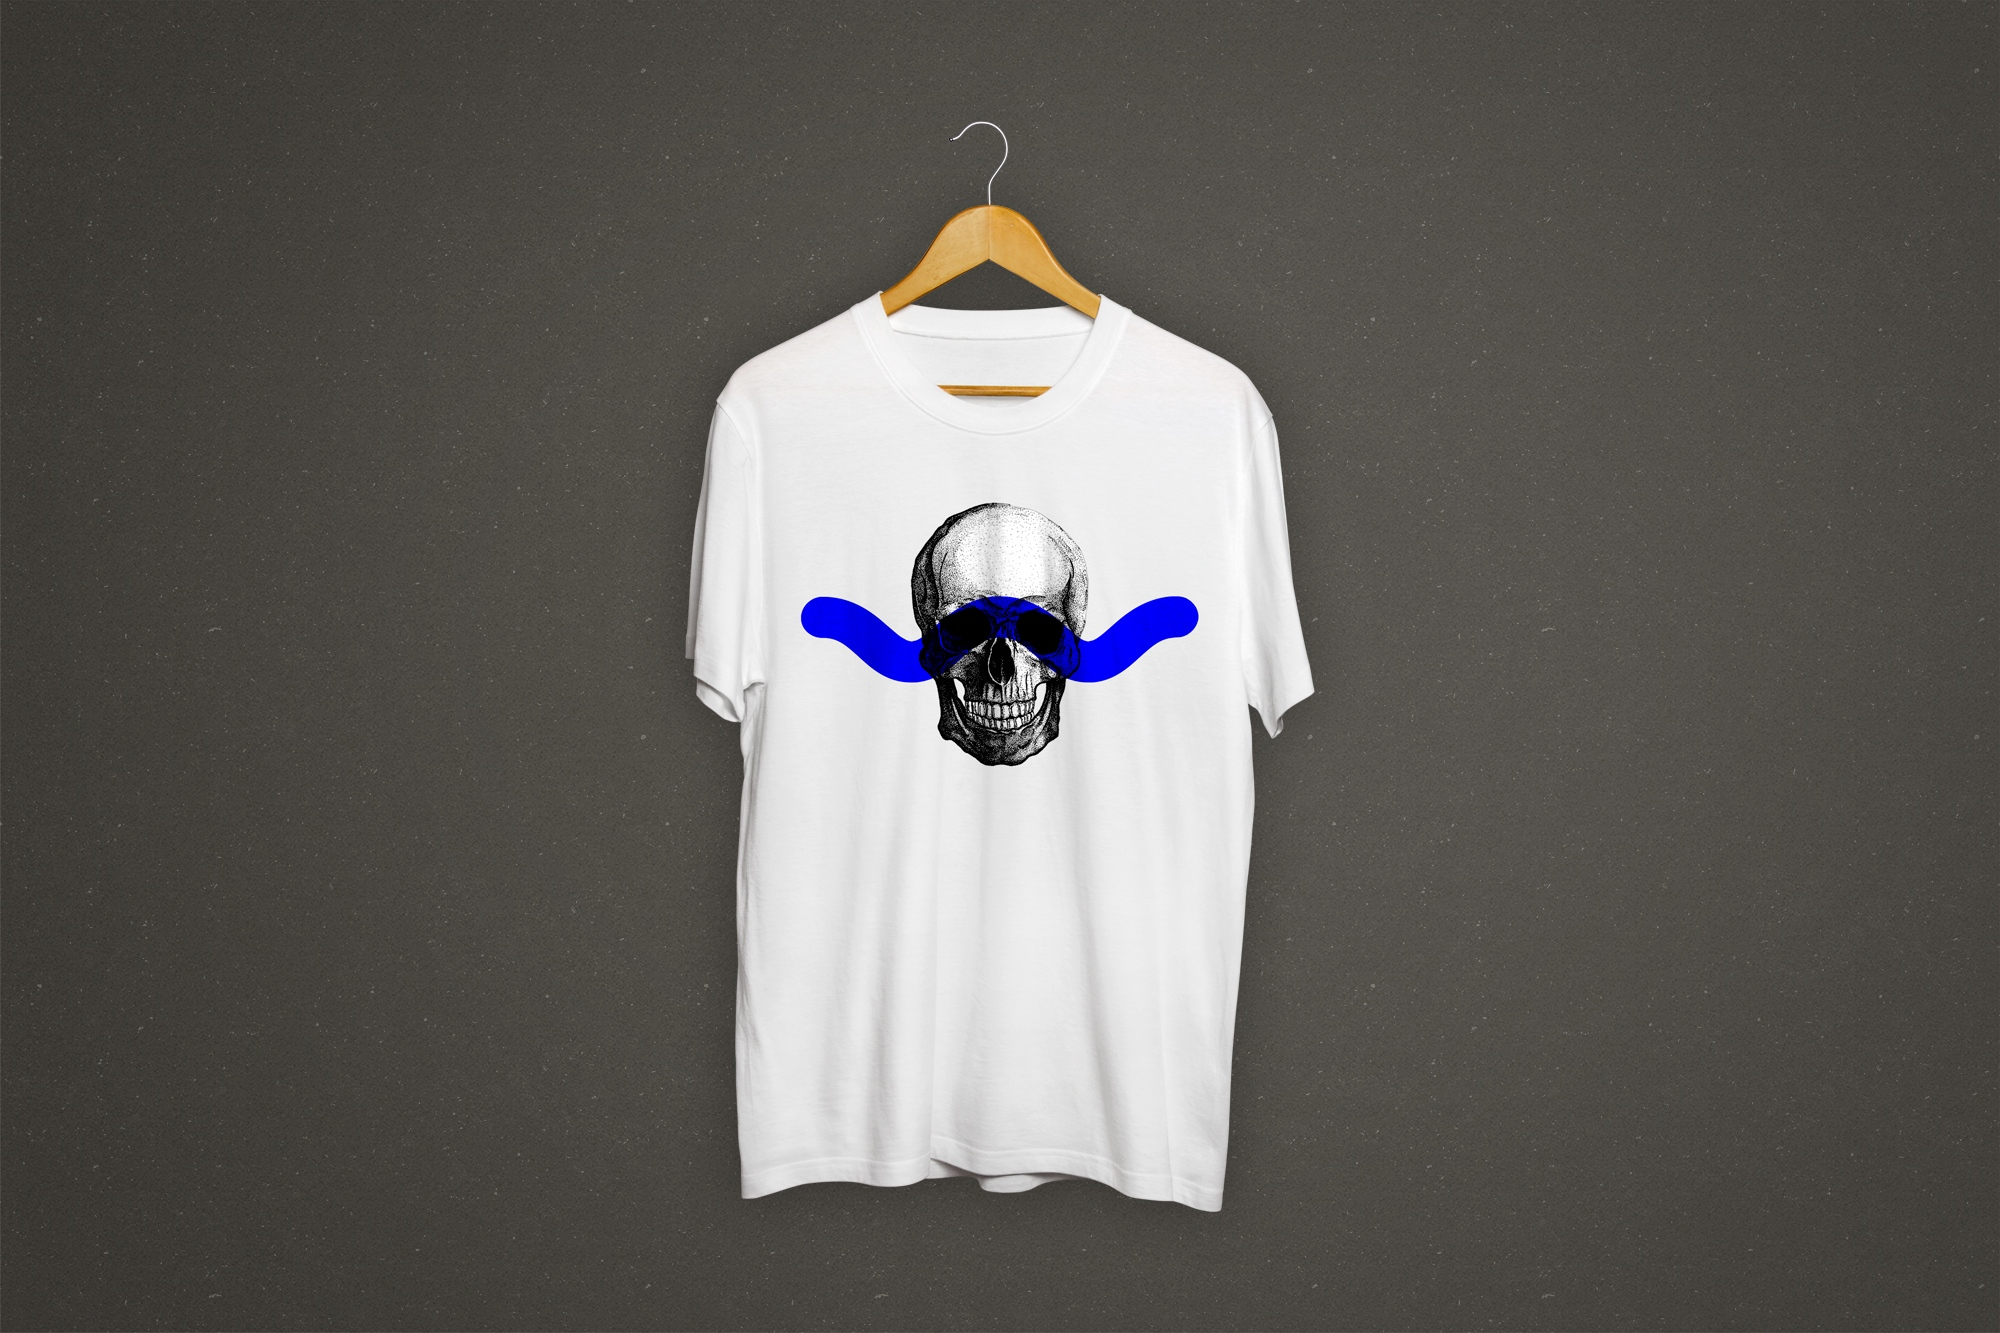 Skull's Head Illustration Tshirt with blue ribbon